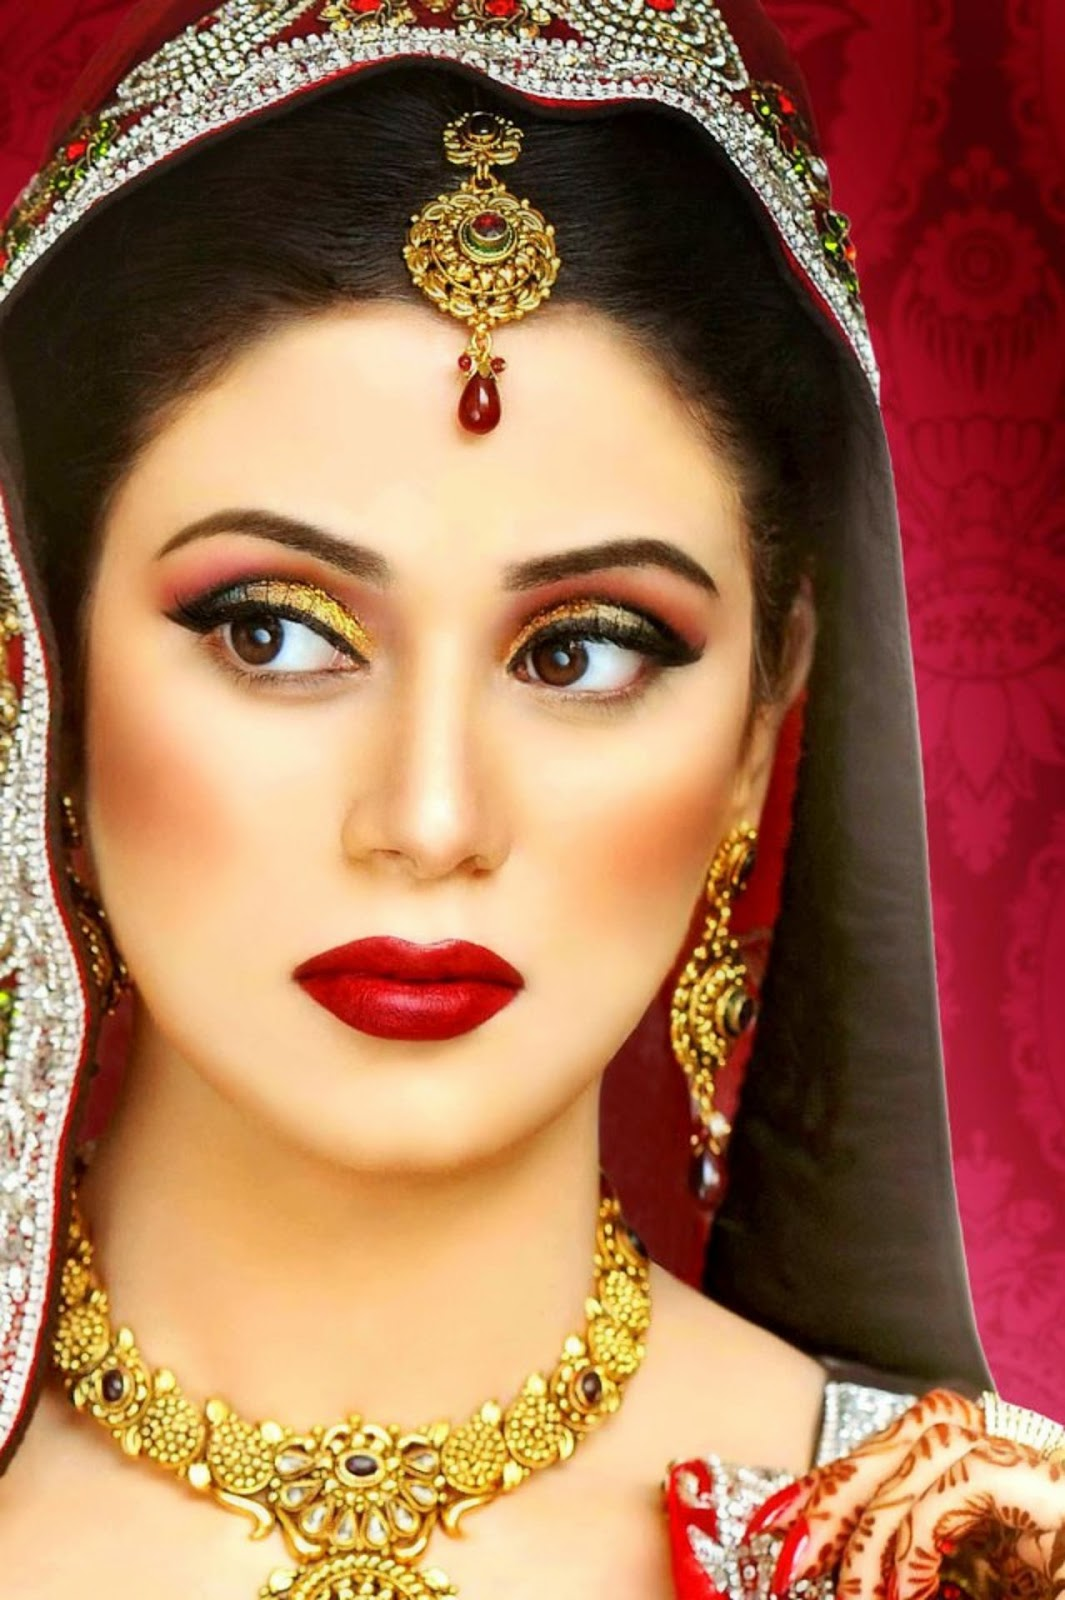 New Makeup Brushes: Indian Dulhan New Look Makeup Ideas 2014 For Girls Image